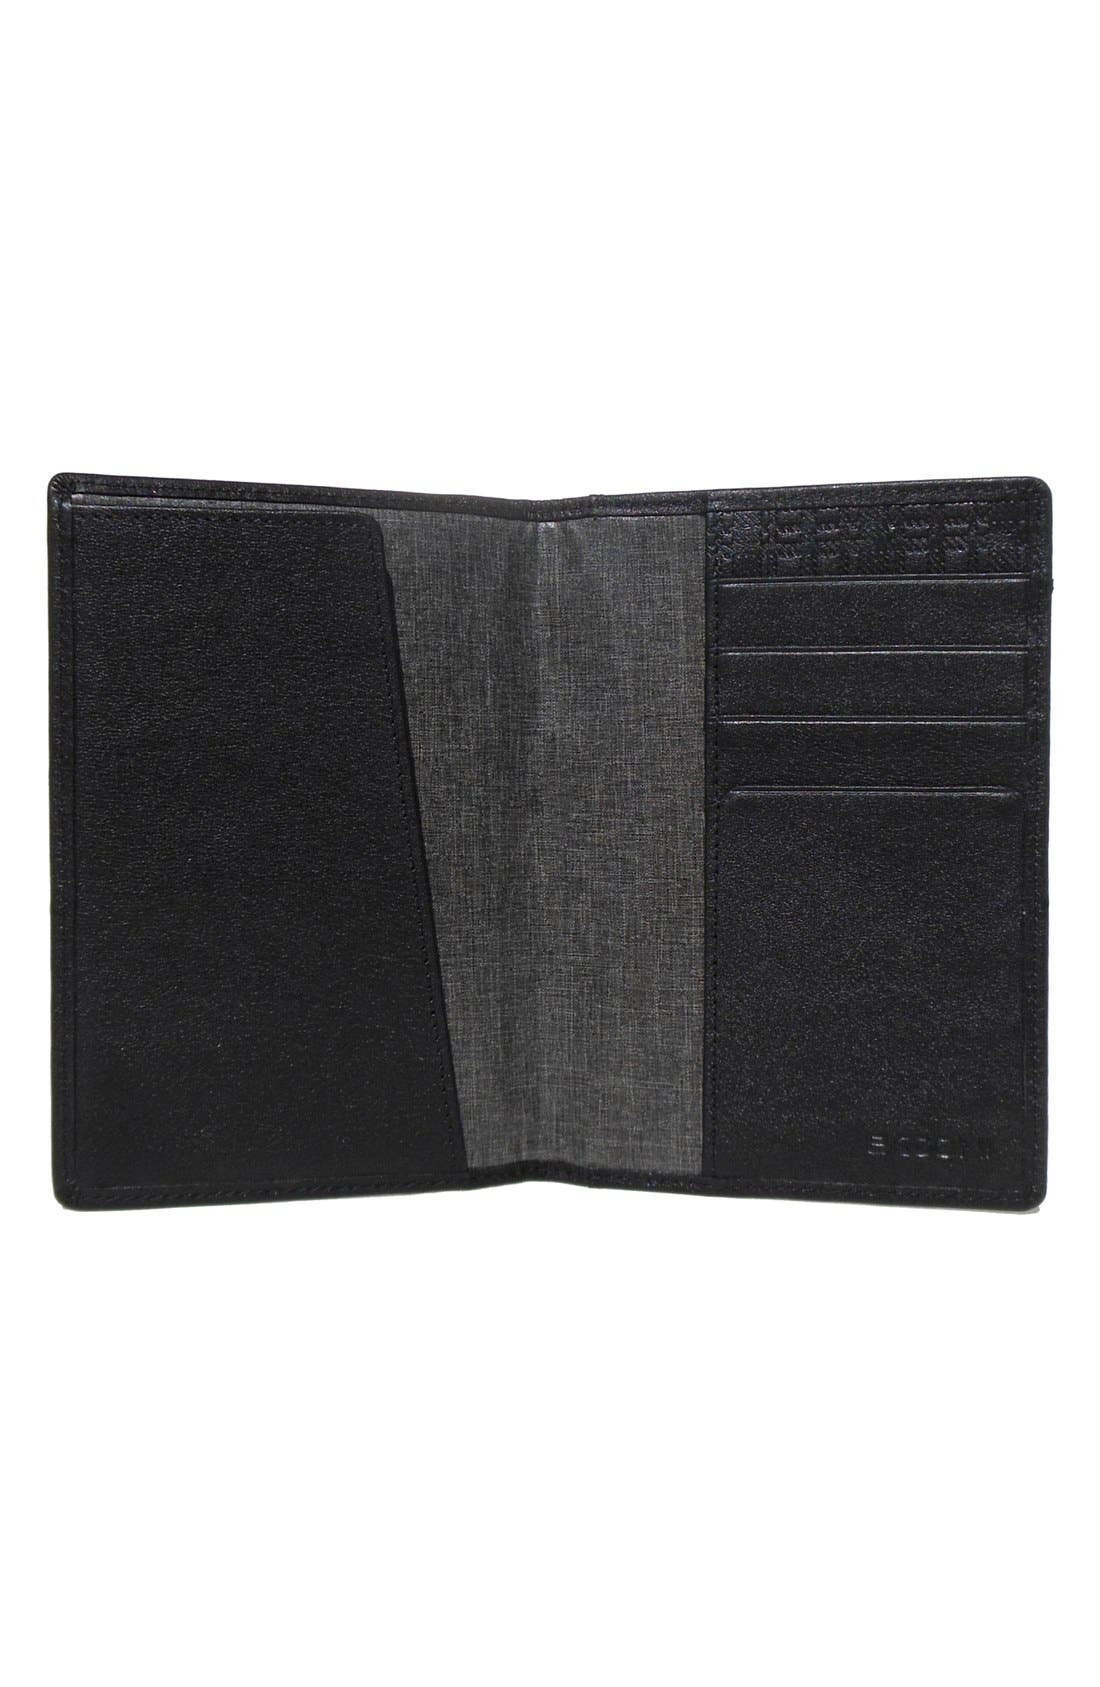 BOCONI 'Grant' RFID Blocker Leather Passport Case, Main, color, BLACK/ GREY